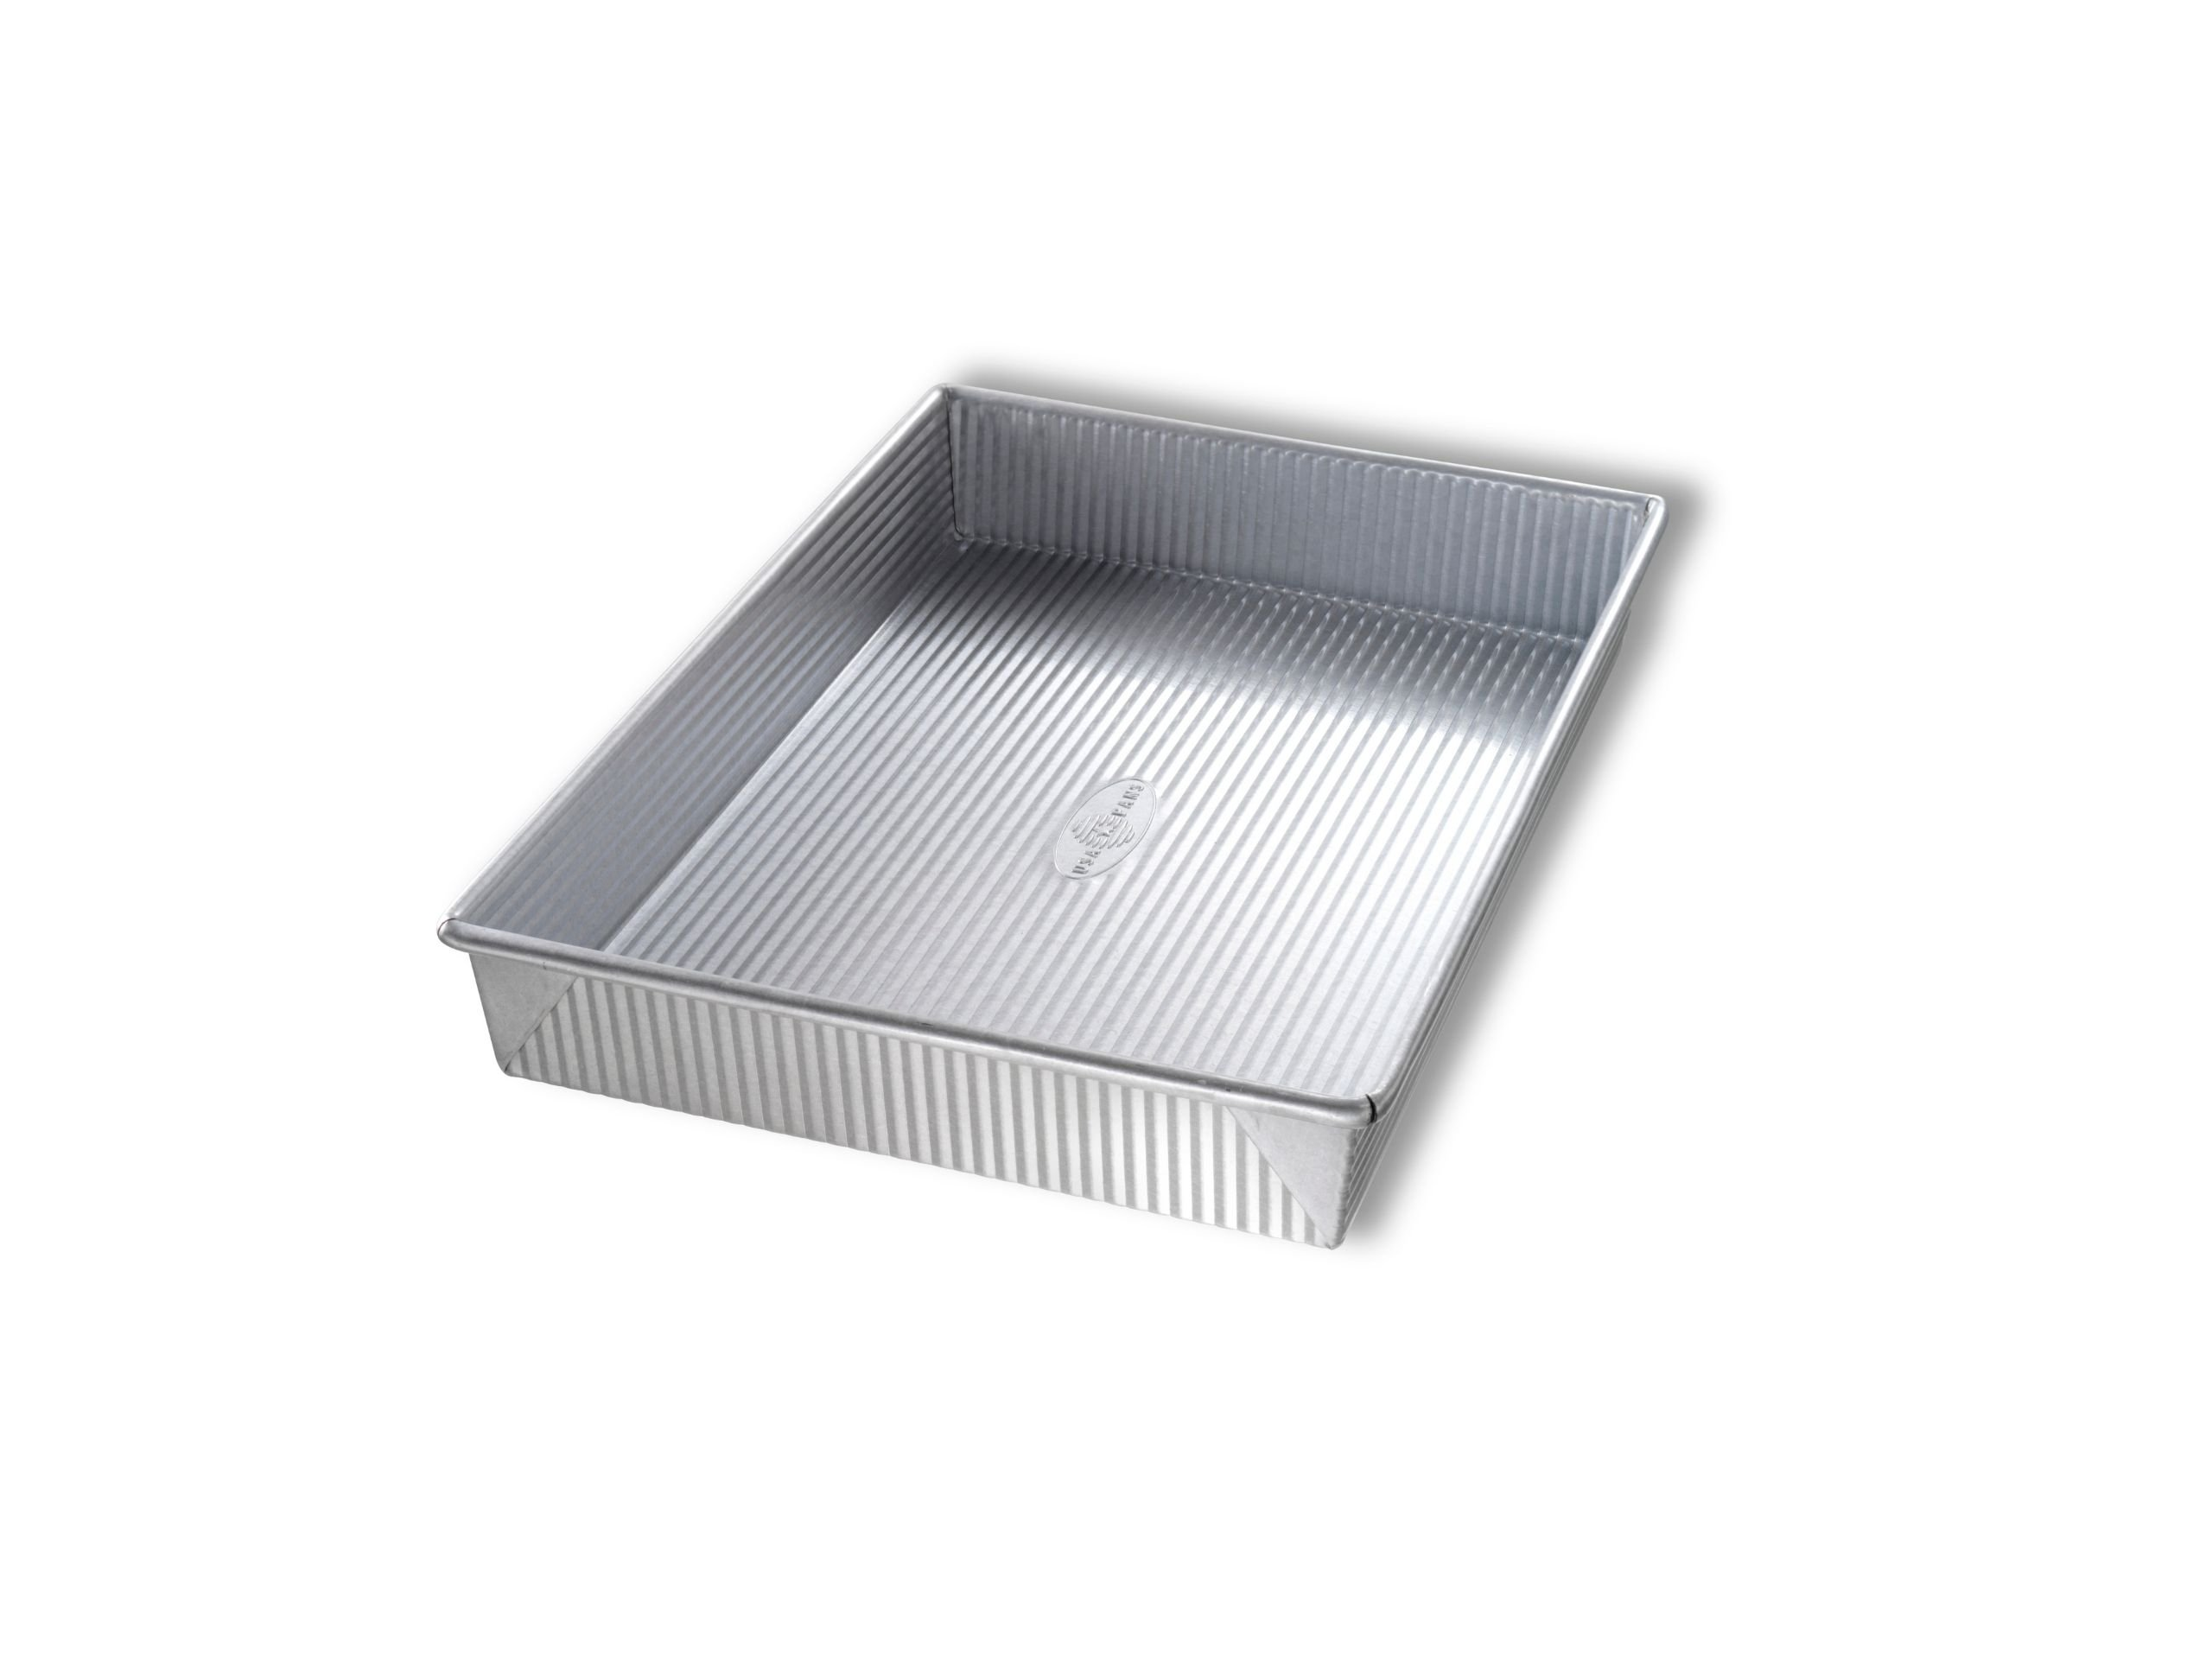 9″ X 13″ RECTANGULAR CAKE PAN